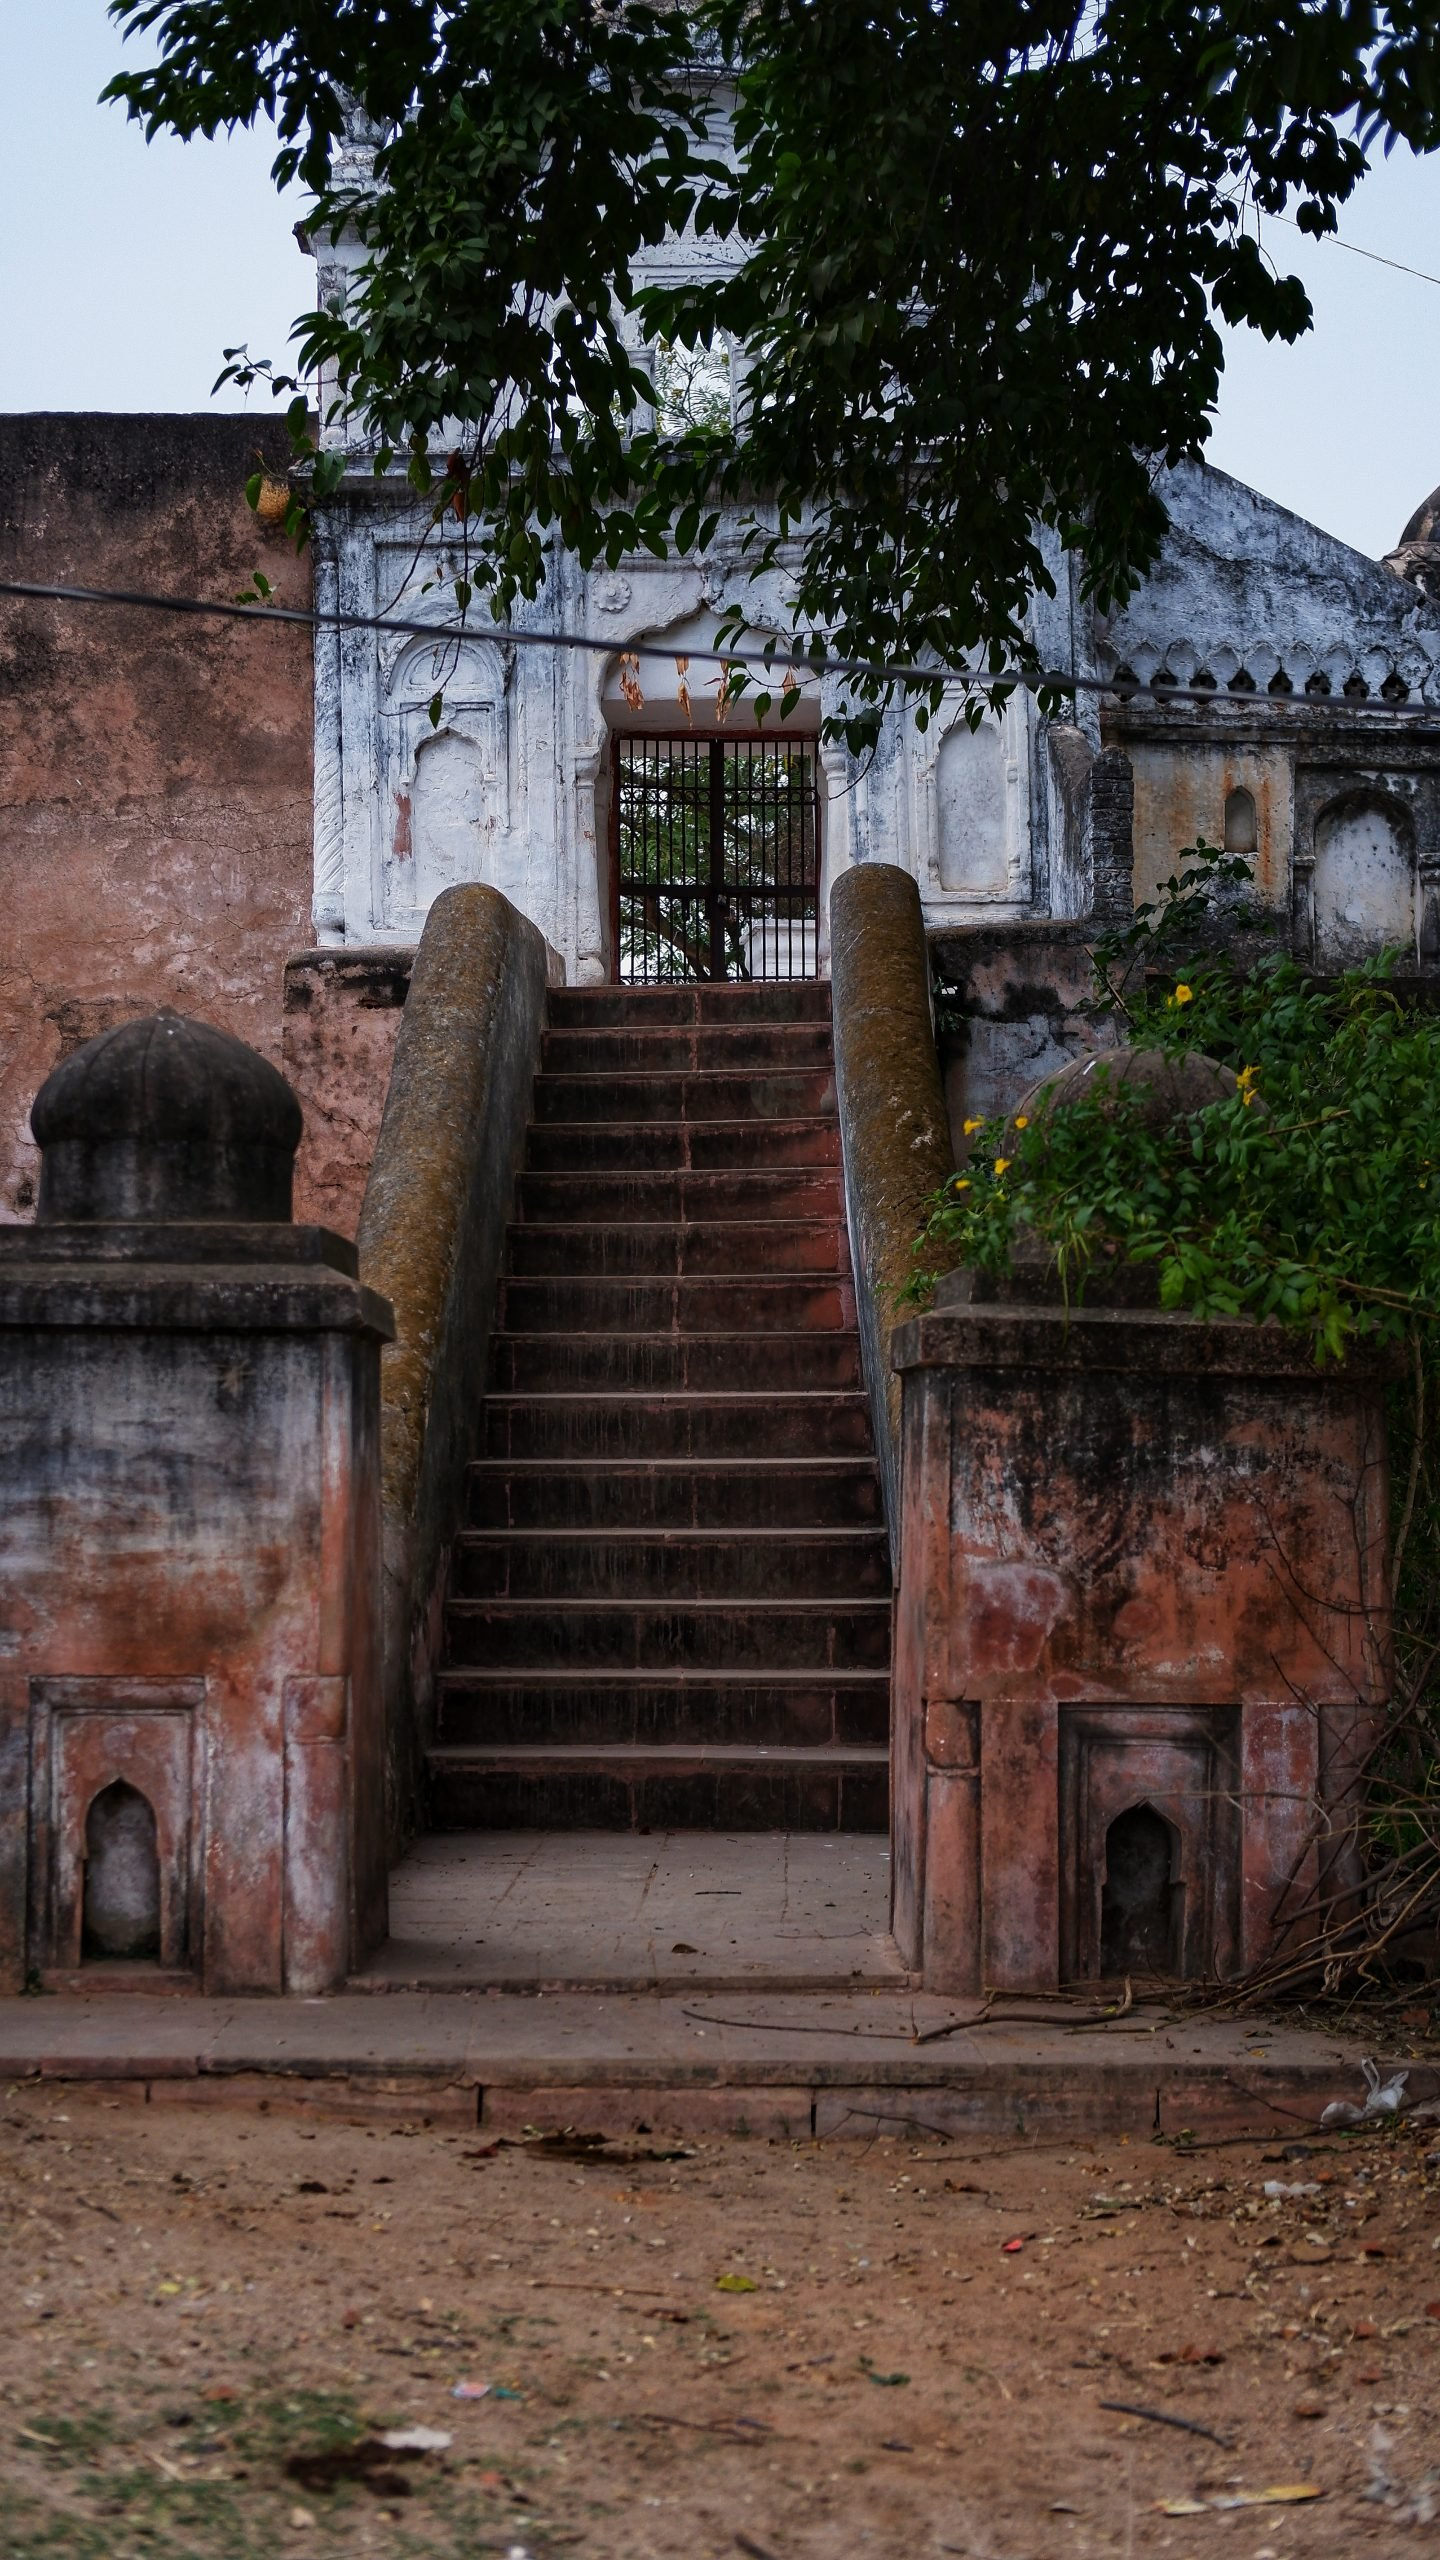 Stairs of an old temple